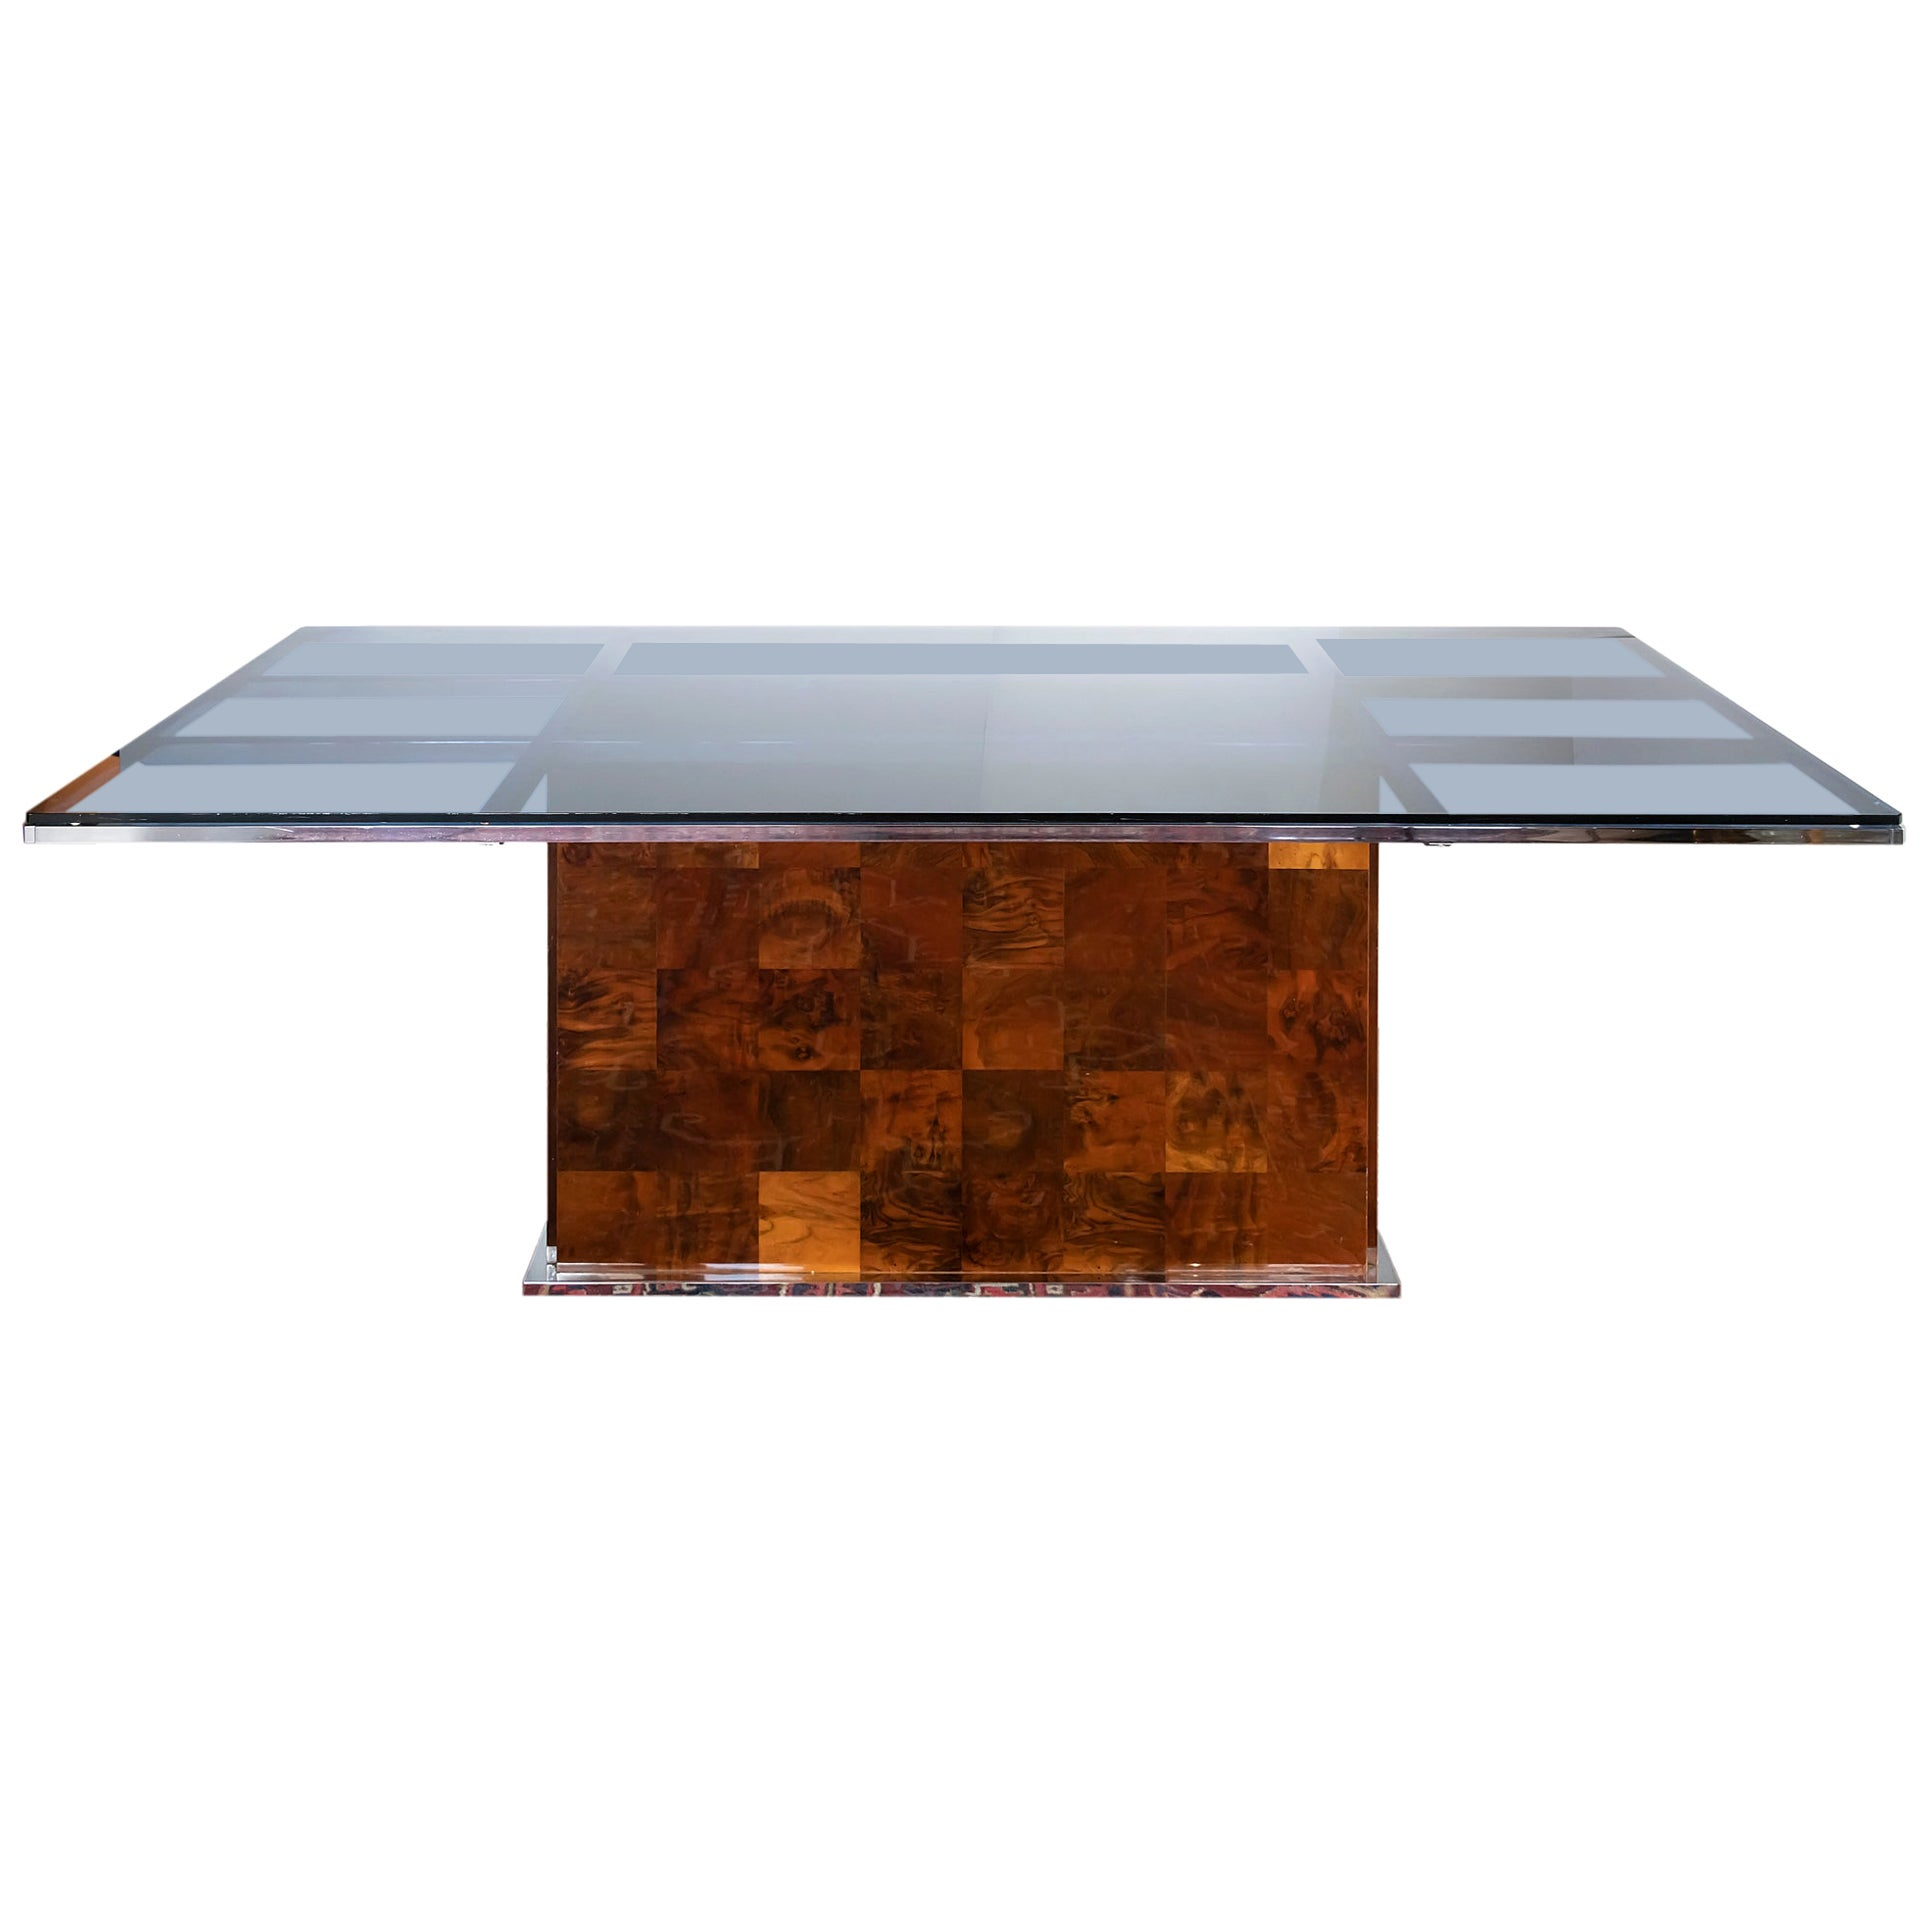 Midcentury Italian Dining Table by Willy Rizzo for Mario Sabot